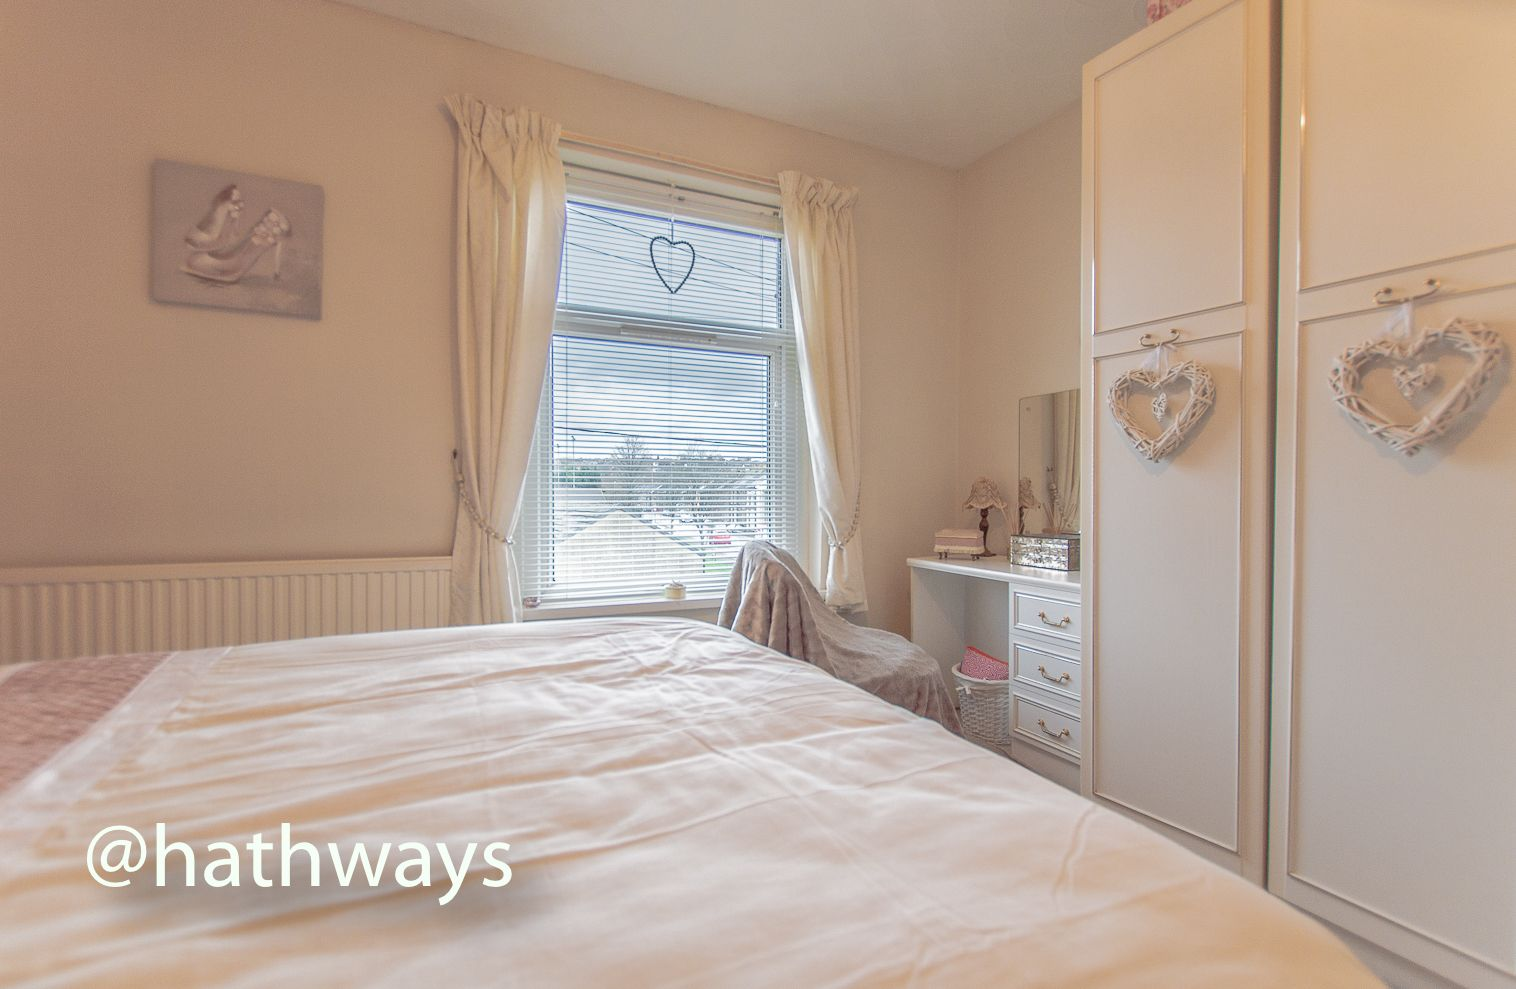 2 bed house for sale in Golynos Place Albert Road  - Property Image 26